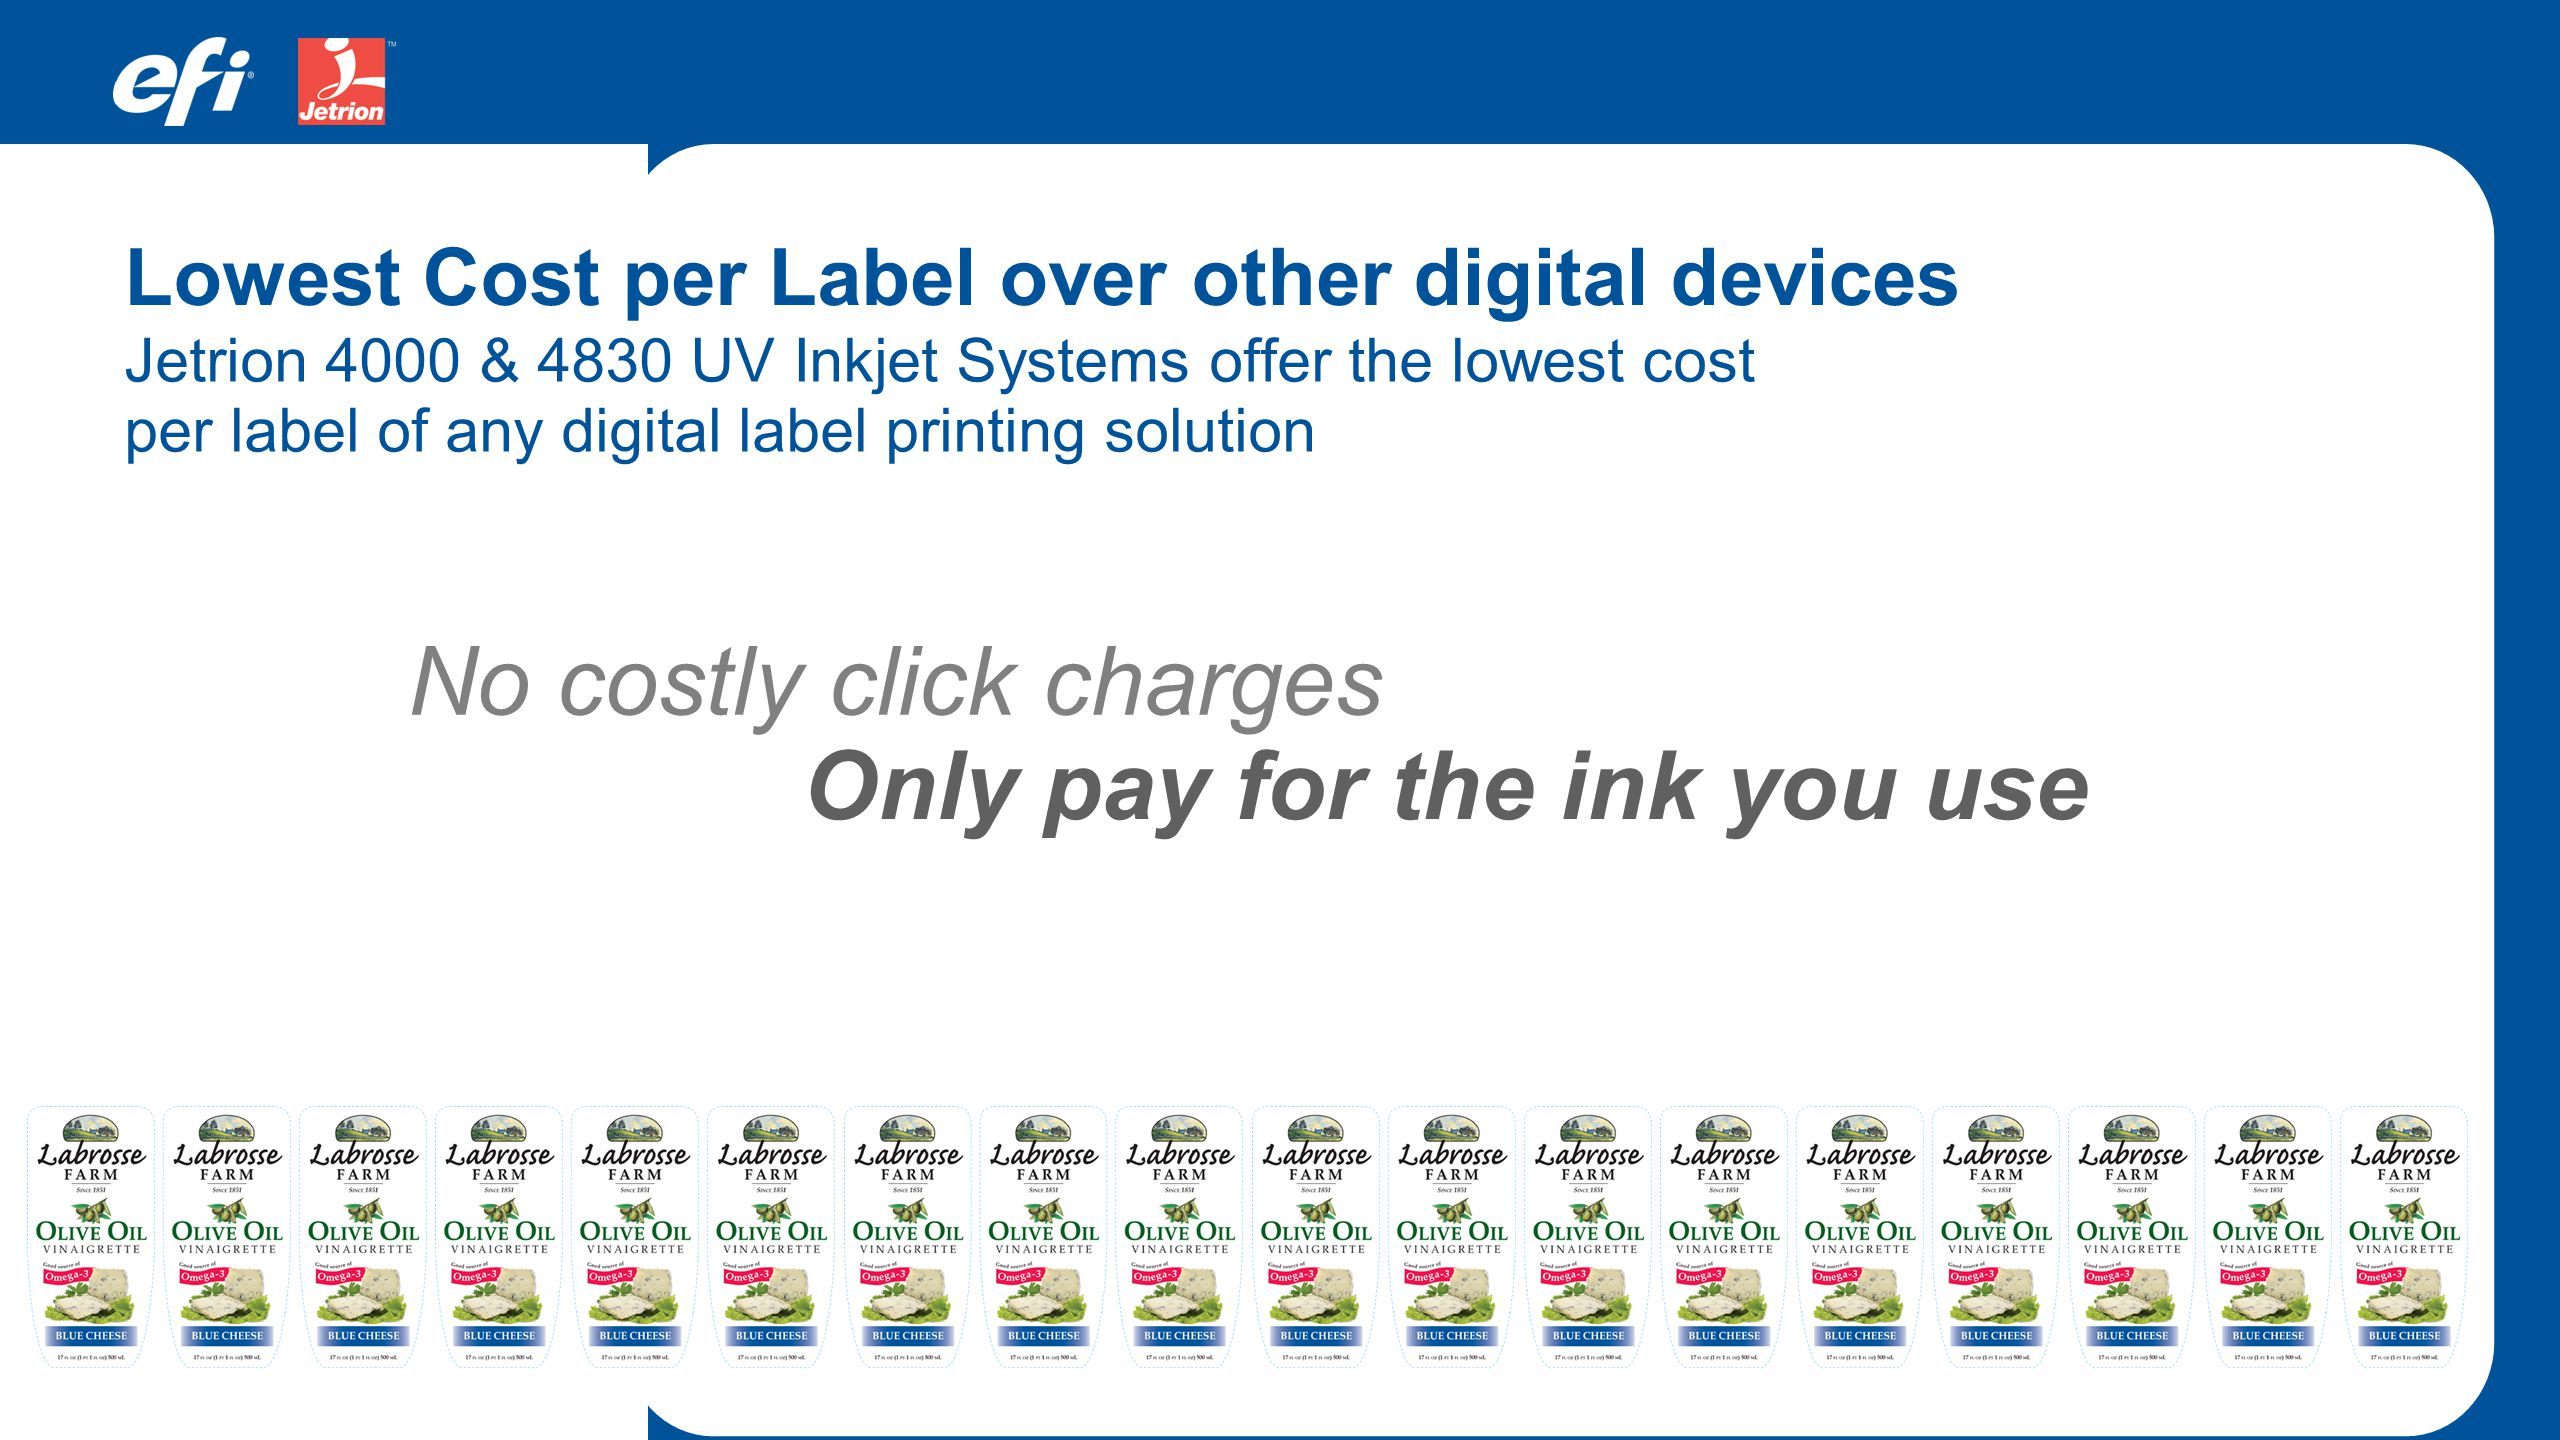 Only pay for the ink you use